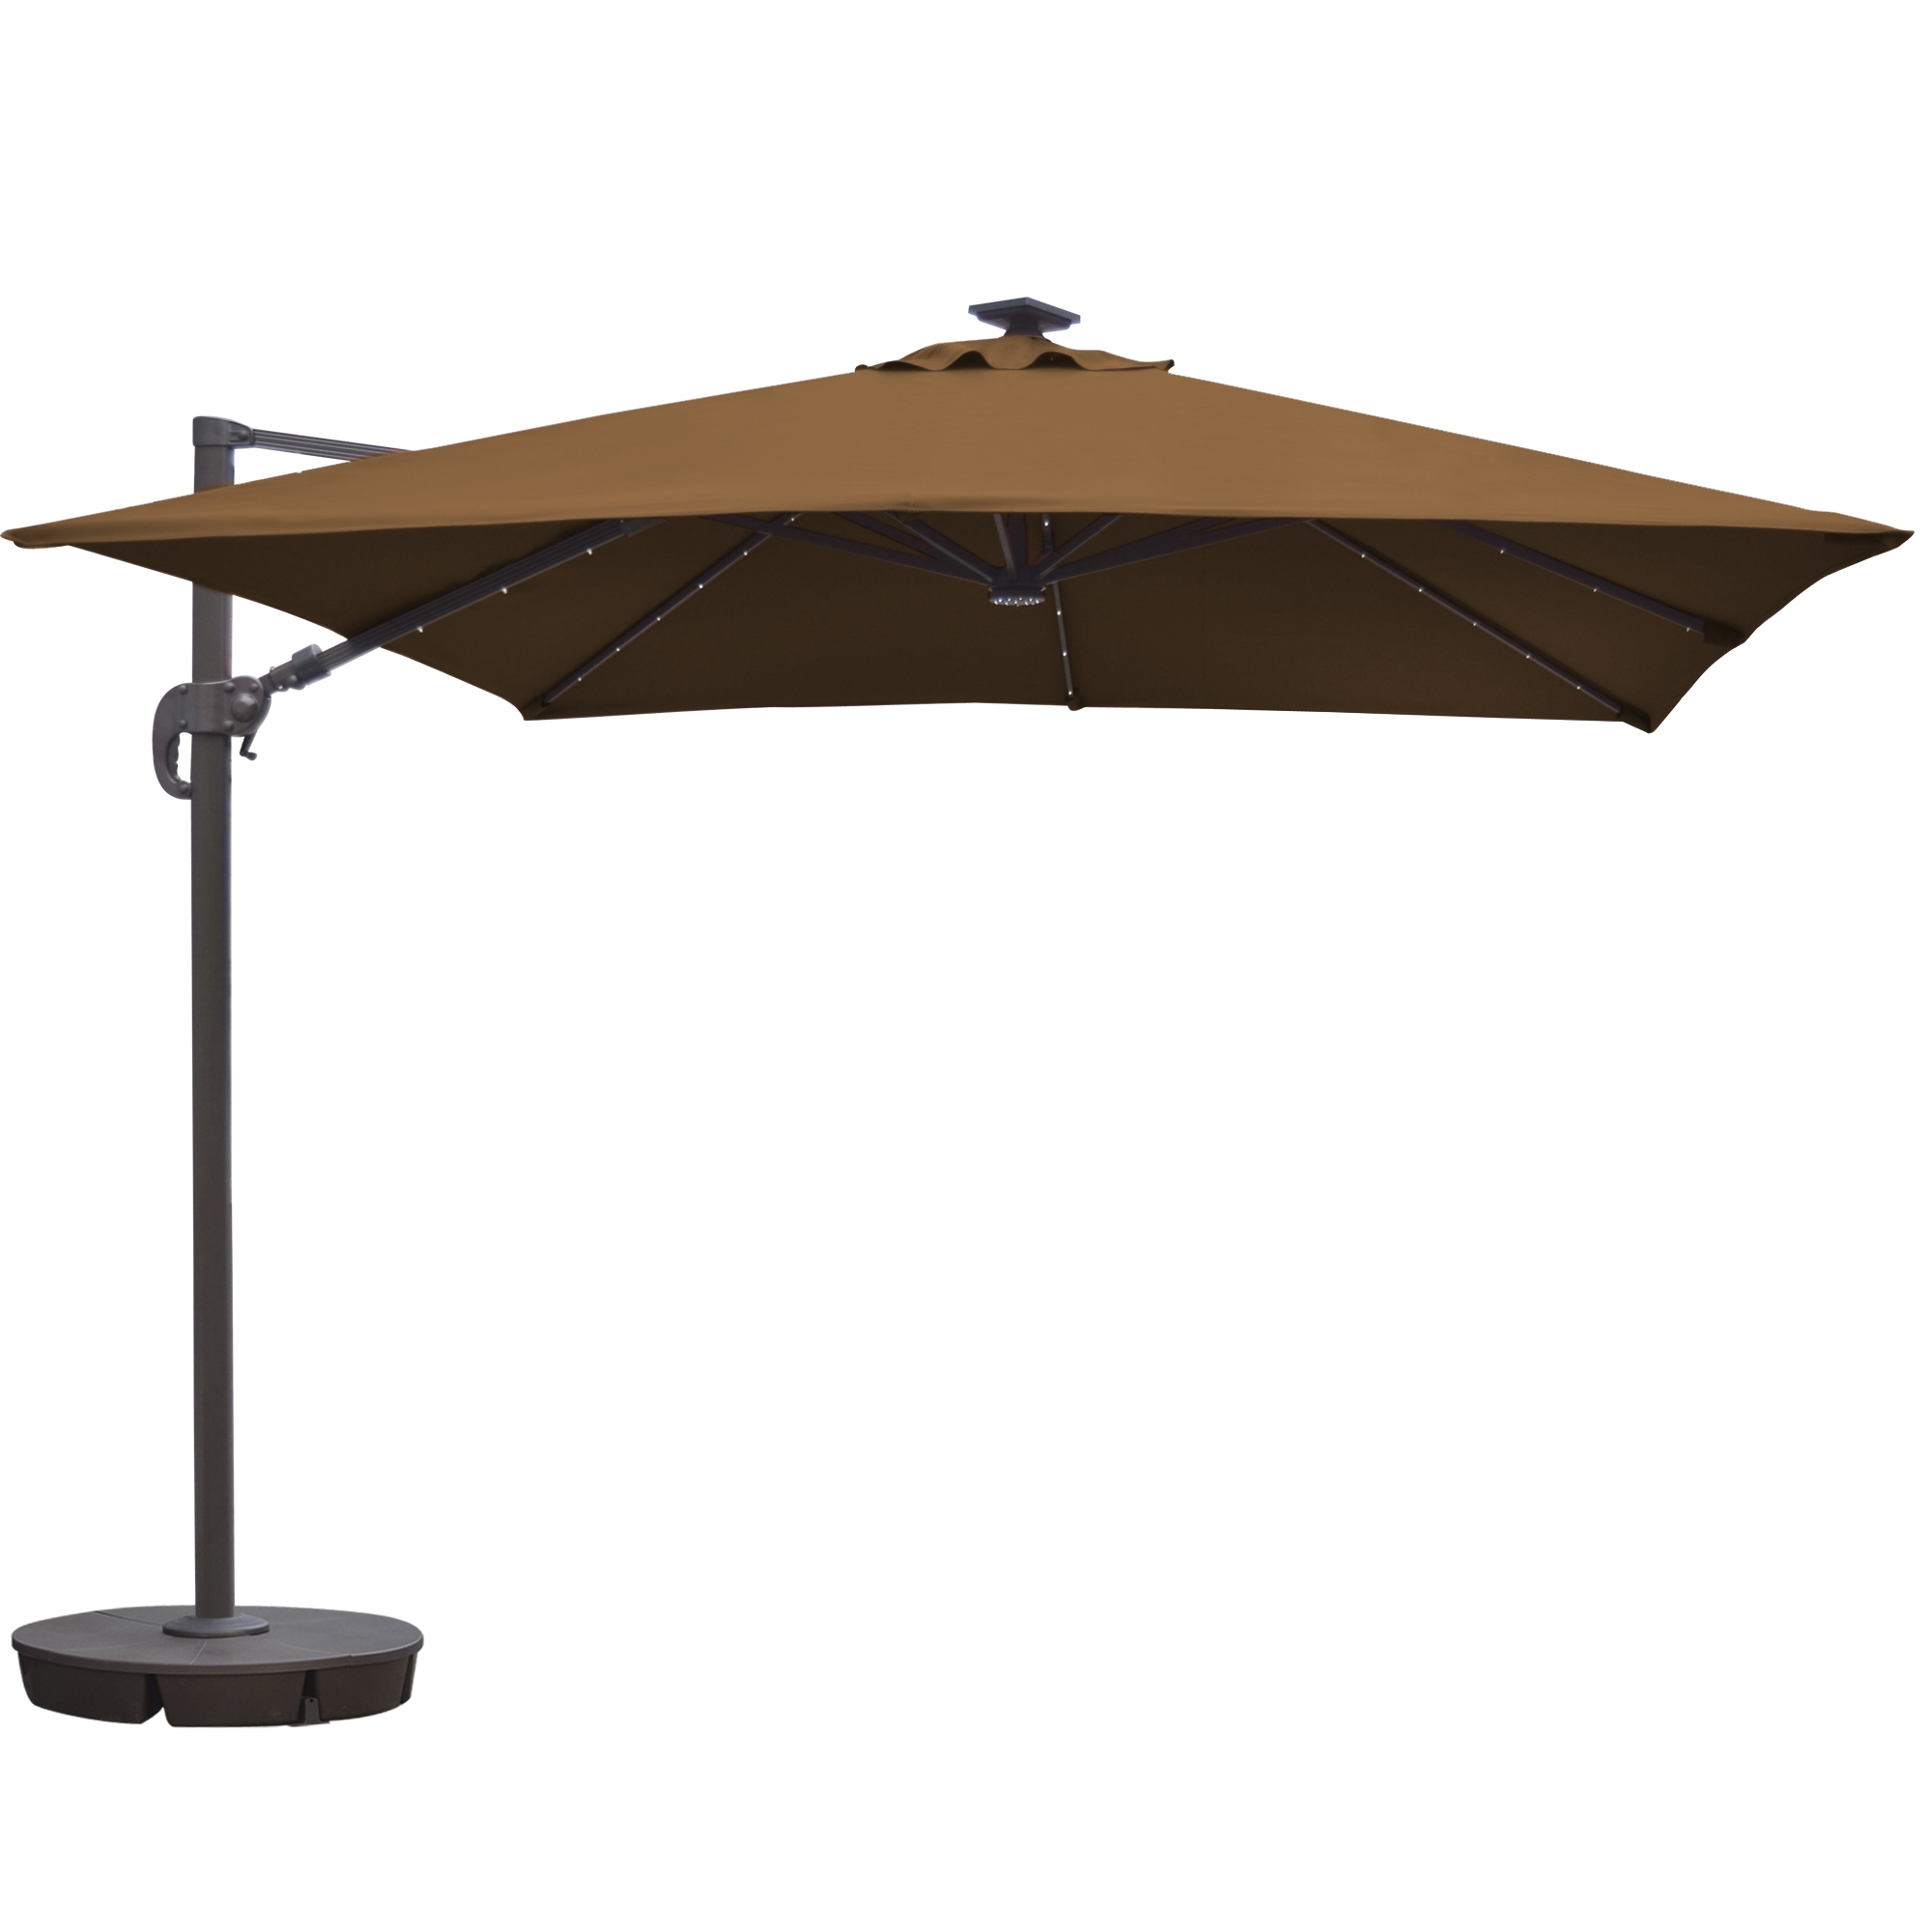 Square Cantilever Patio Umbrellas Pertaining To Most Recently Released Island Umbrella Santorini Ii Fiesta 10 Ft Square Cantilever Solar (View 12 of 20)